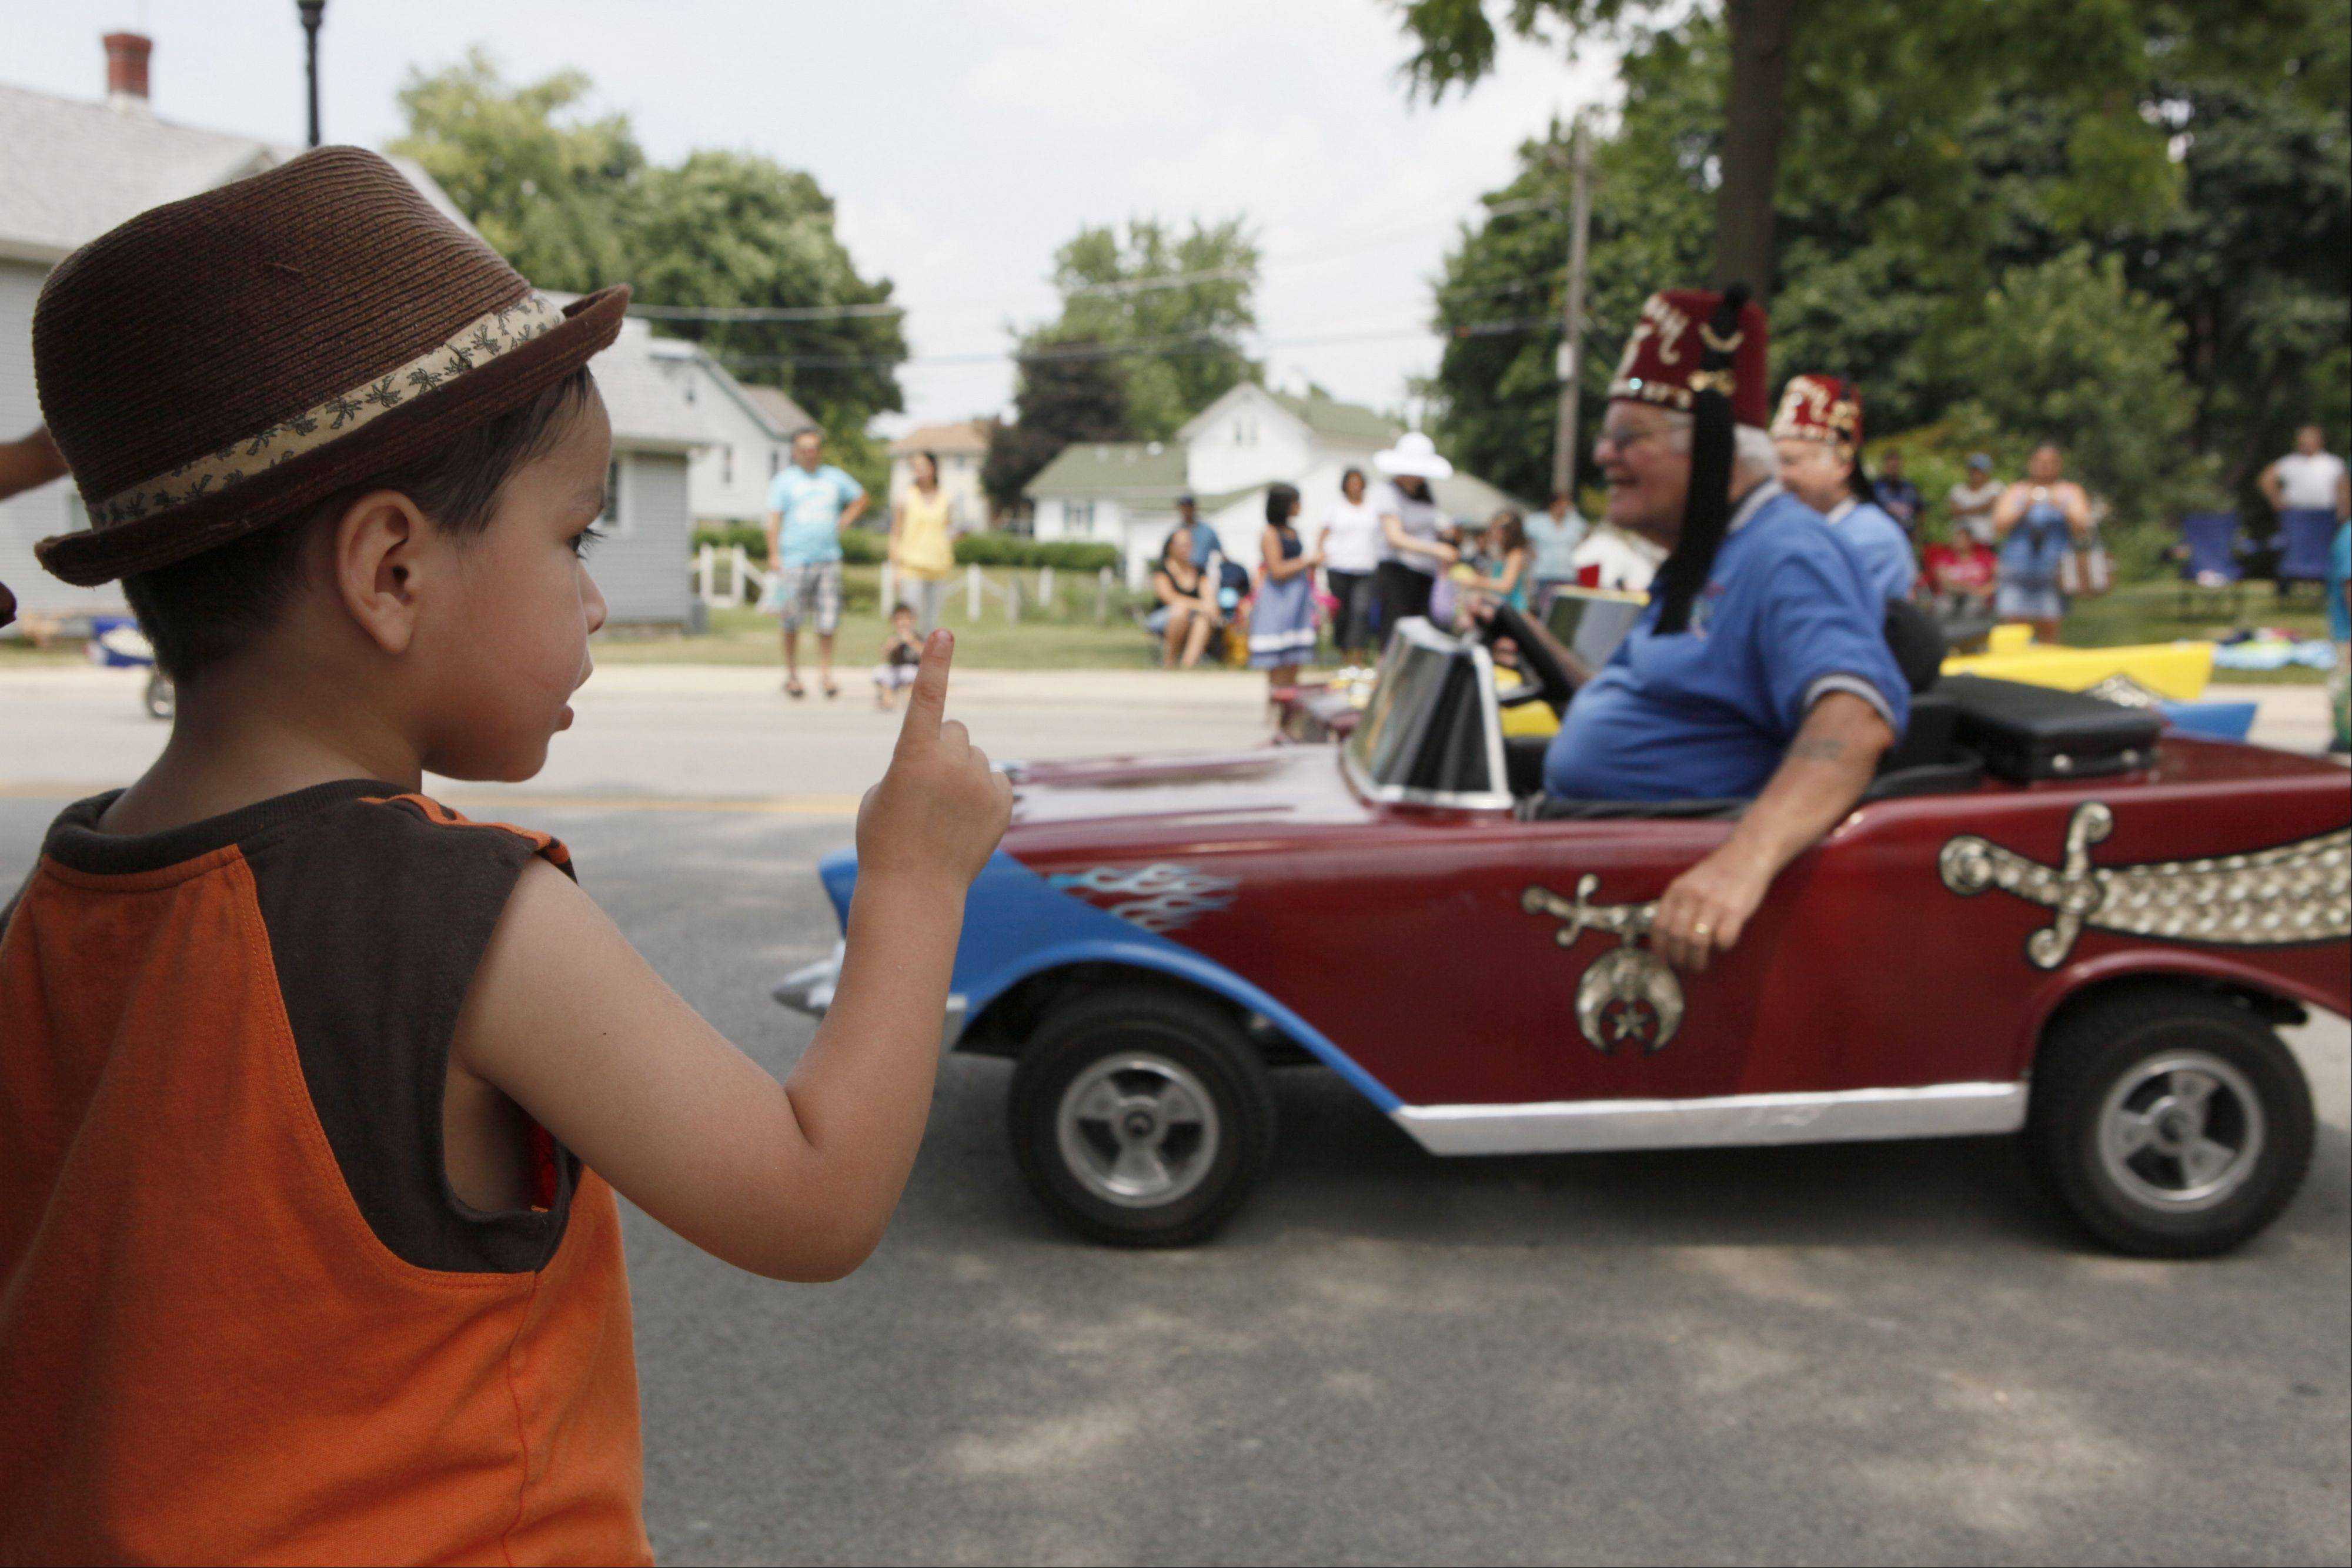 Elias Hewera, 2, watches as Medinah car club rides by in minicars at the West Chicago Railroad Days Parade Sunday.